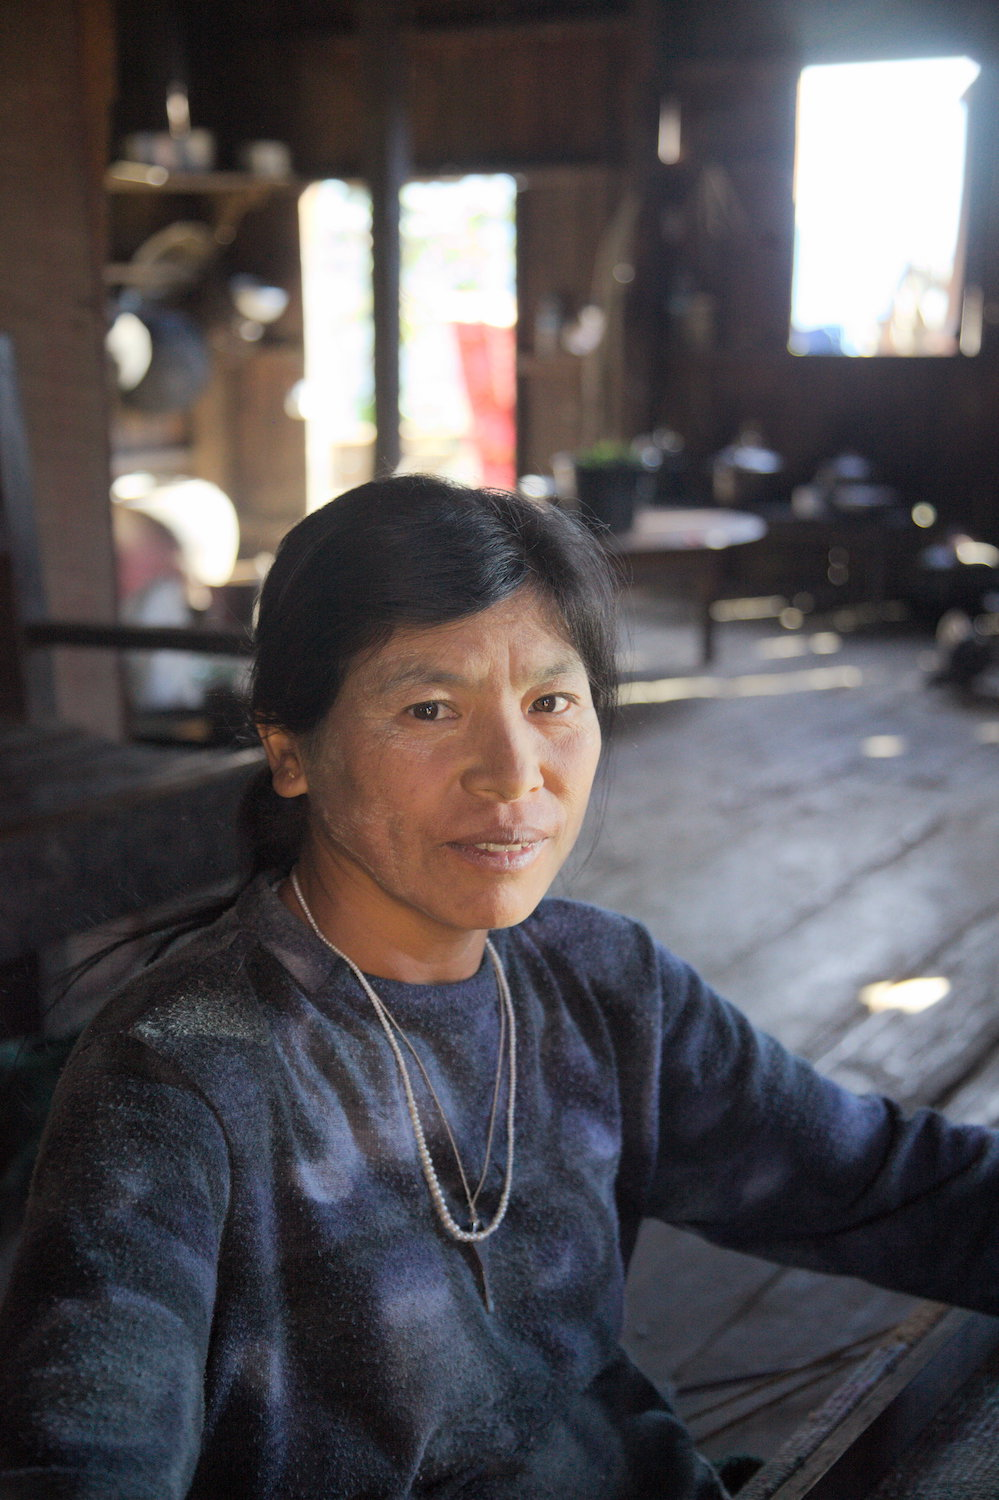 Saizang-village-Manchin-weaver-sits-at-loom.jpg